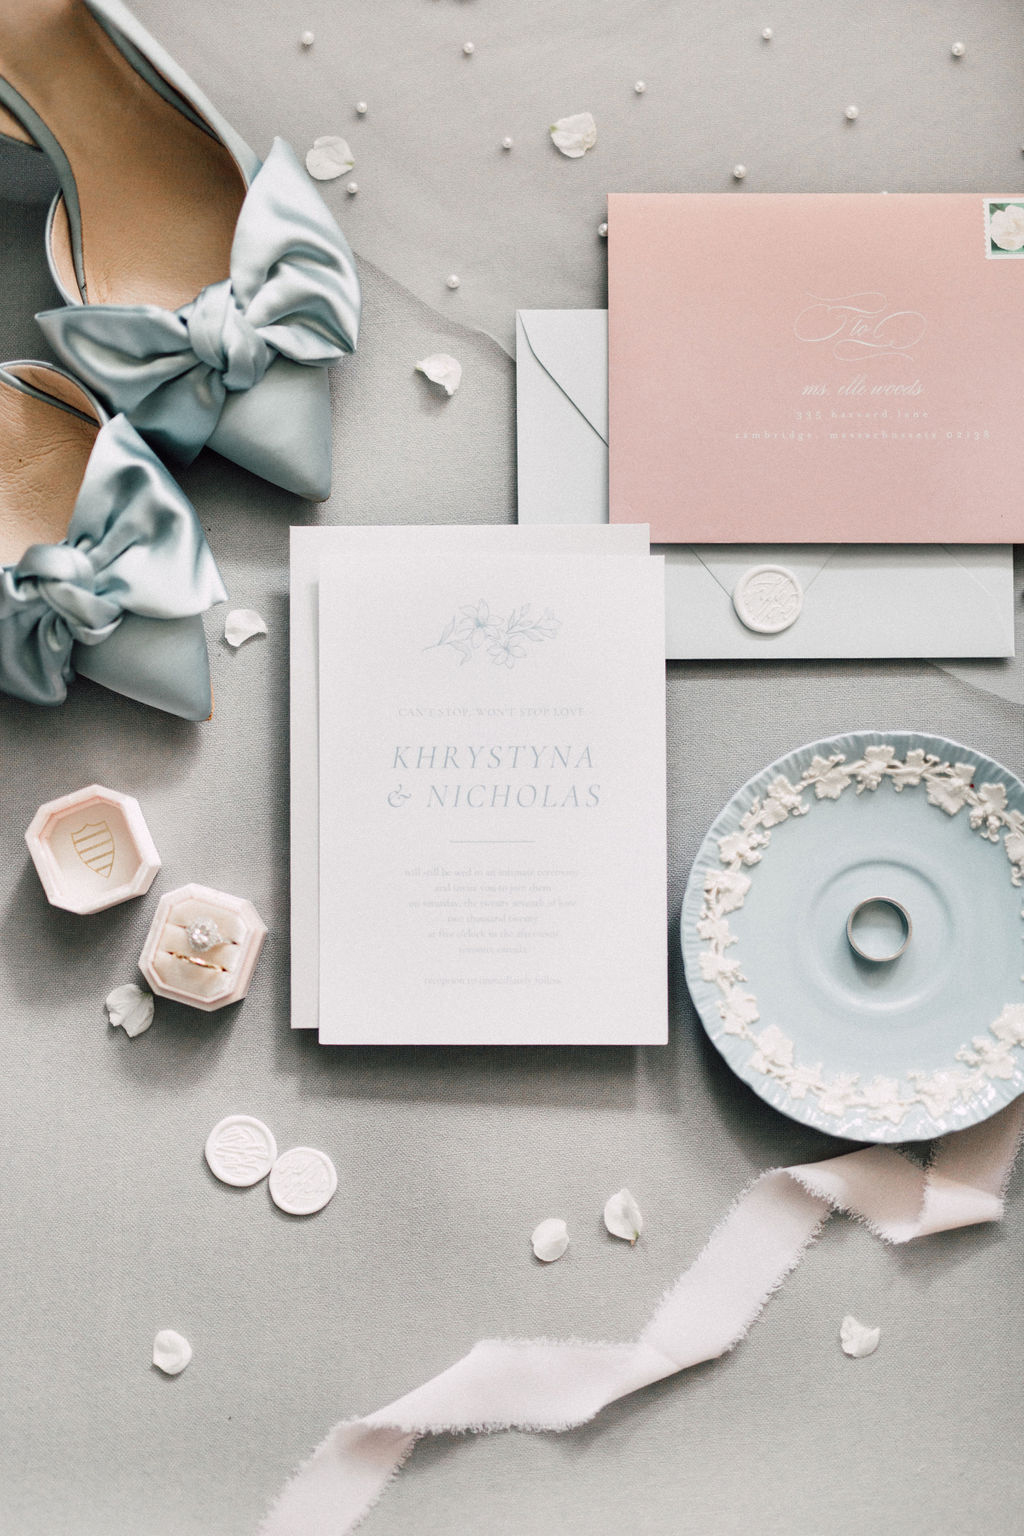 khrystyna nick wedding invites